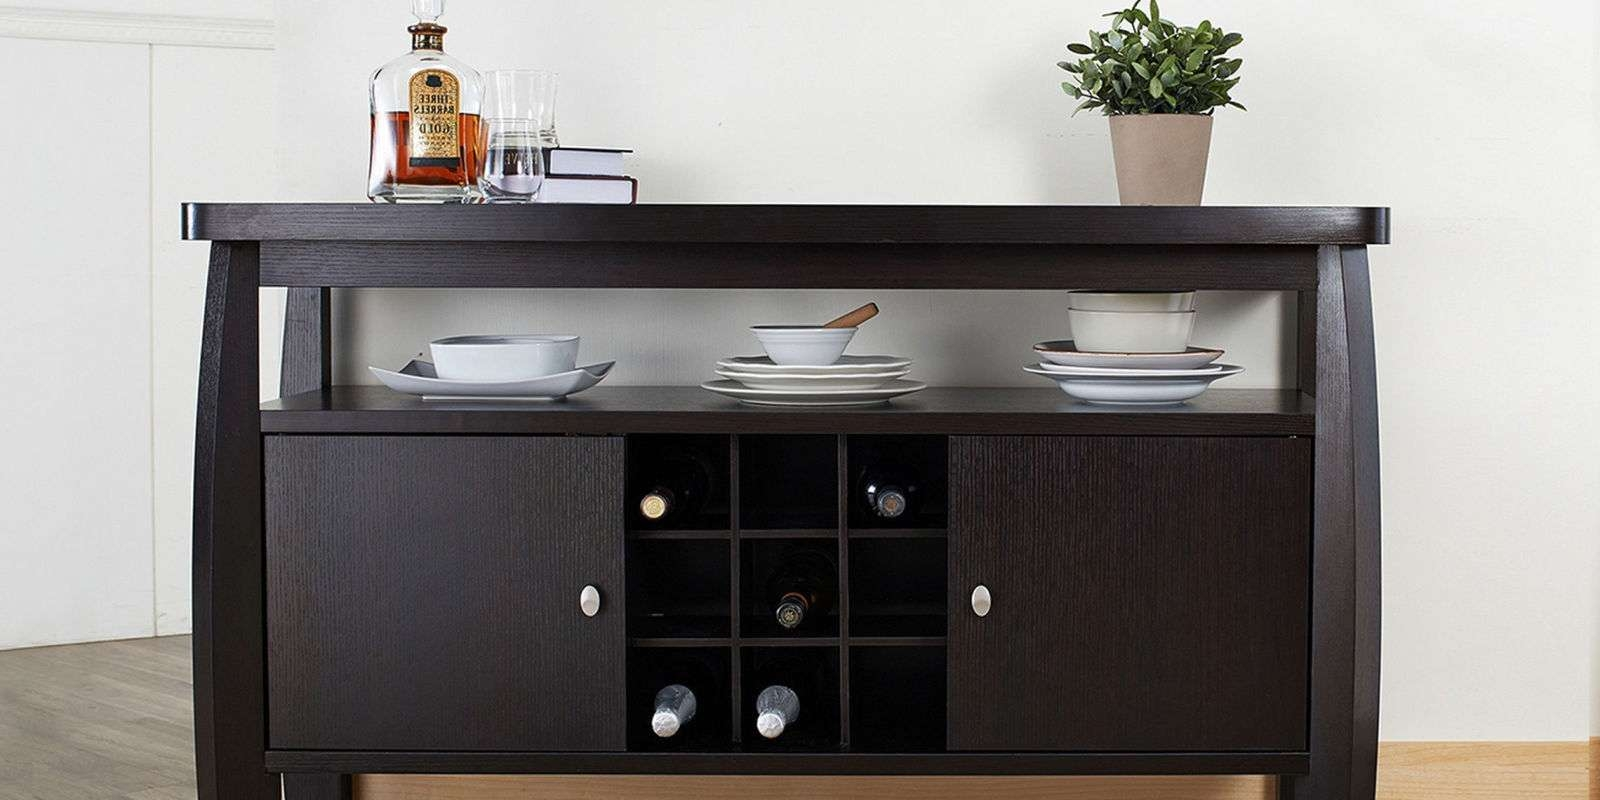 11 Best Sideboards And Buffets In 2018 – Reviews Of Sideboards Intended For Dining Room Sideboards And Buffets (View 11 of 20)